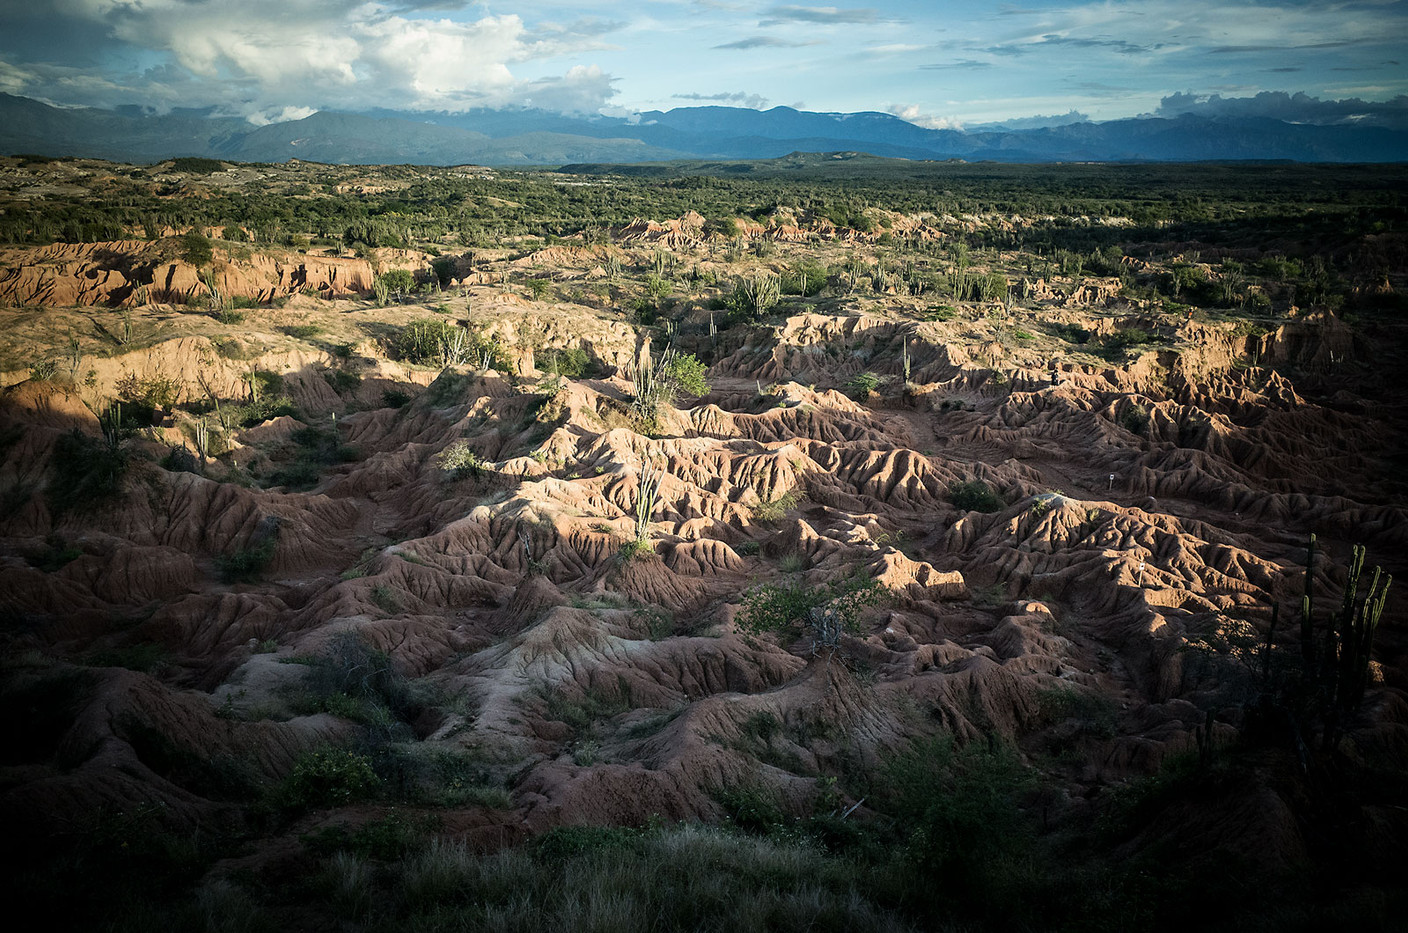 Afternoon sunlight rakes across the surface of spore-like formations that spread across the Tatacoa Desert in southern Colombia.